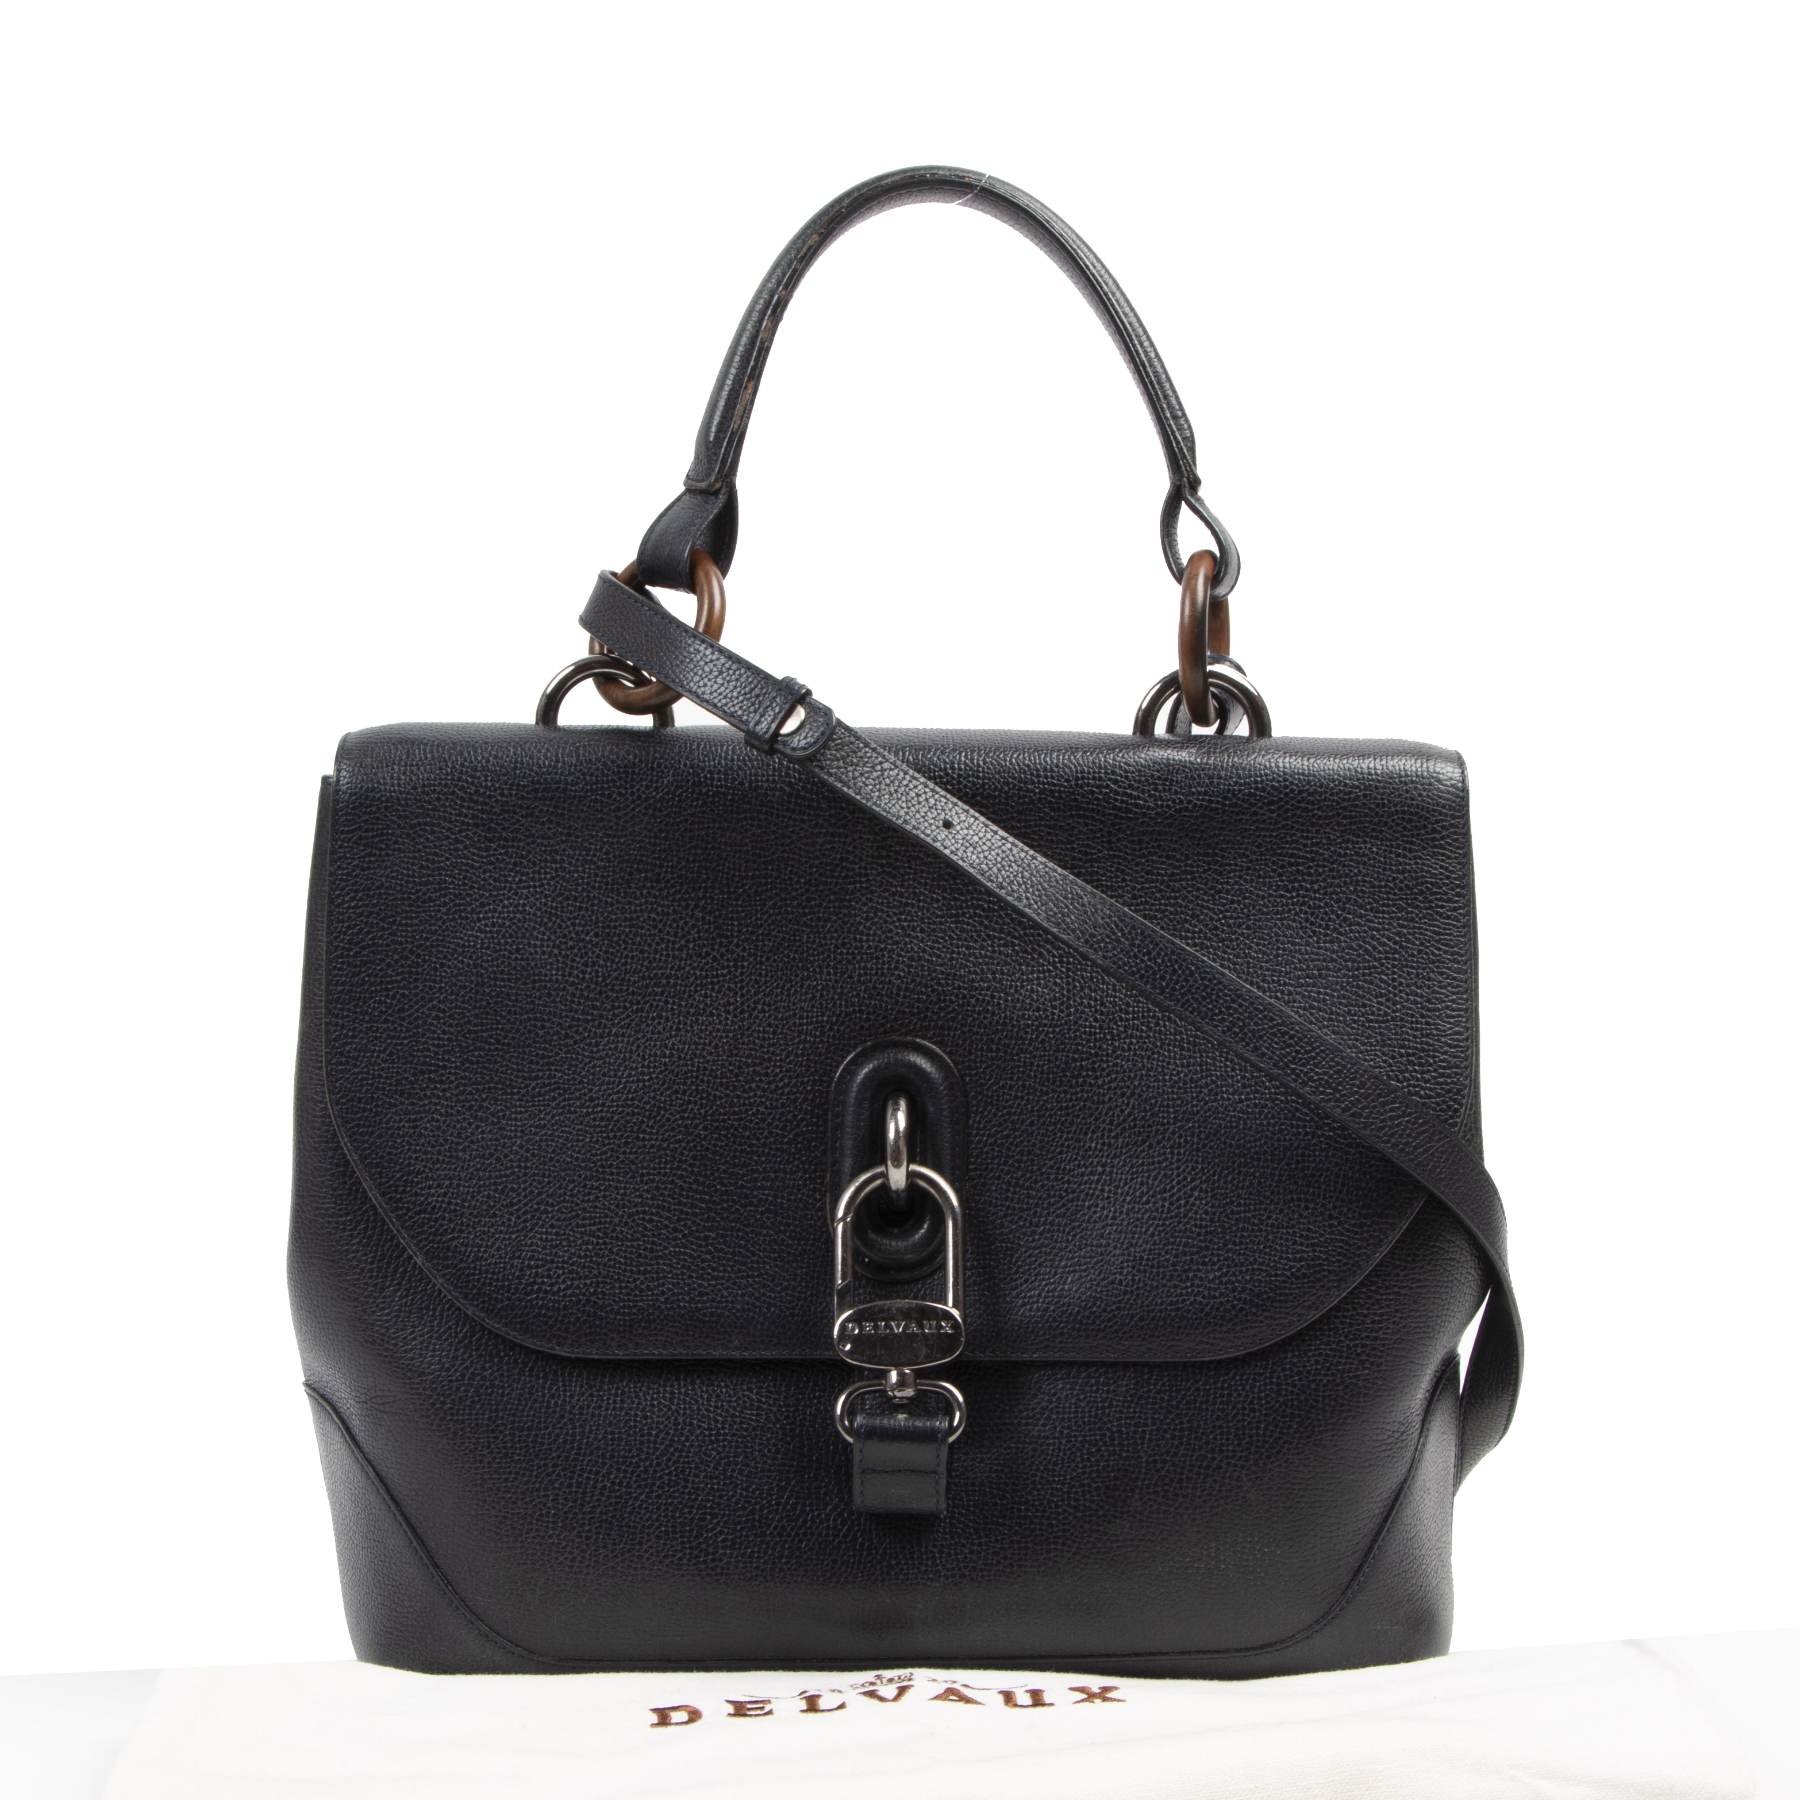 We buy and sell your authentic designer Delvaux Black Leather Top Handle Bag